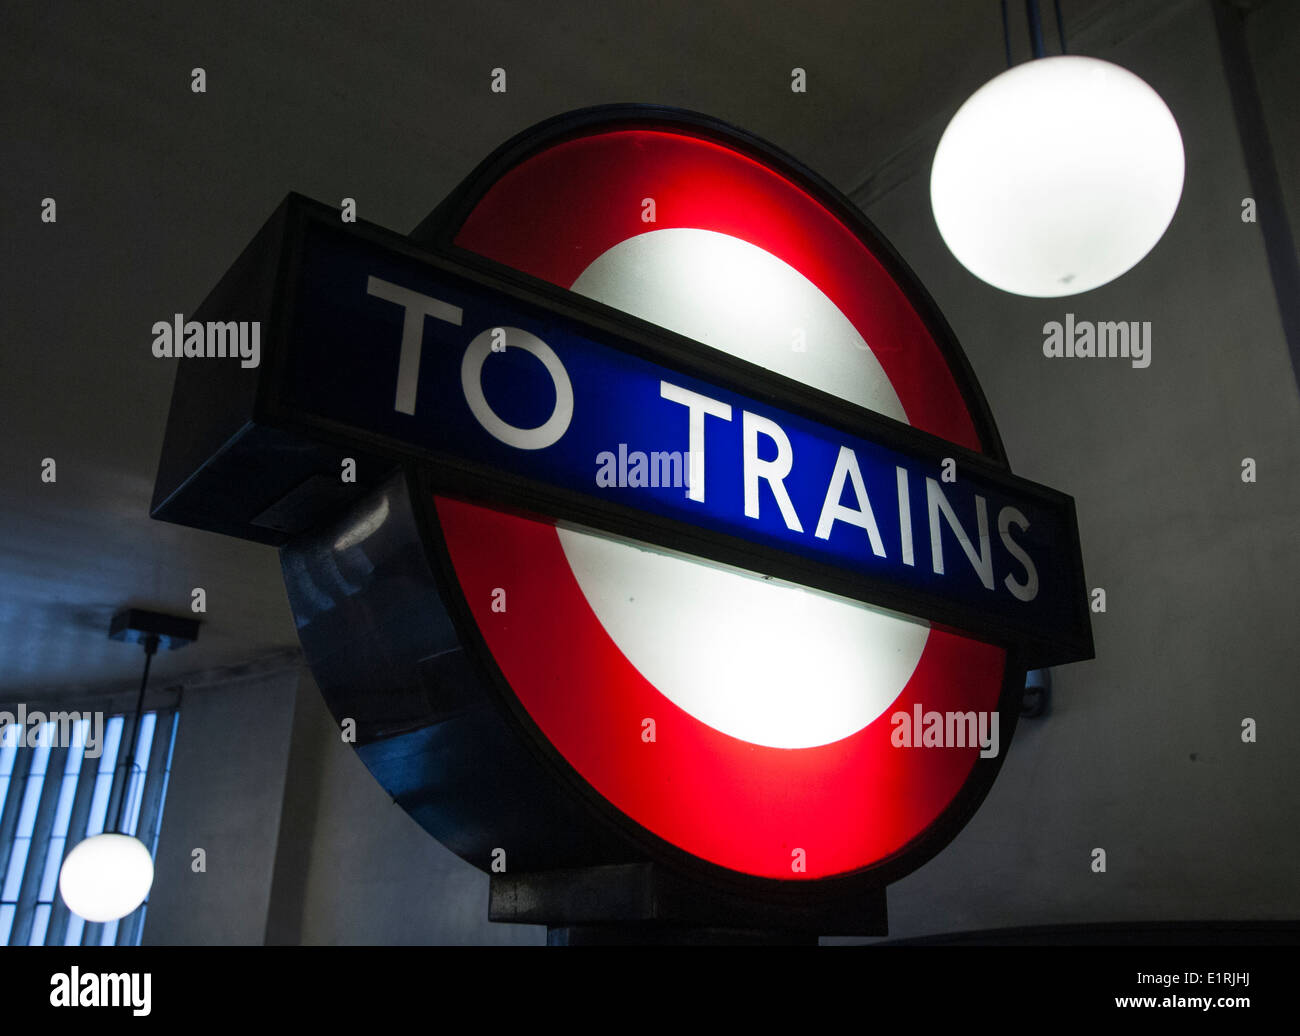 A sign pointing to trains on the London Underground, England UK - Stock Image